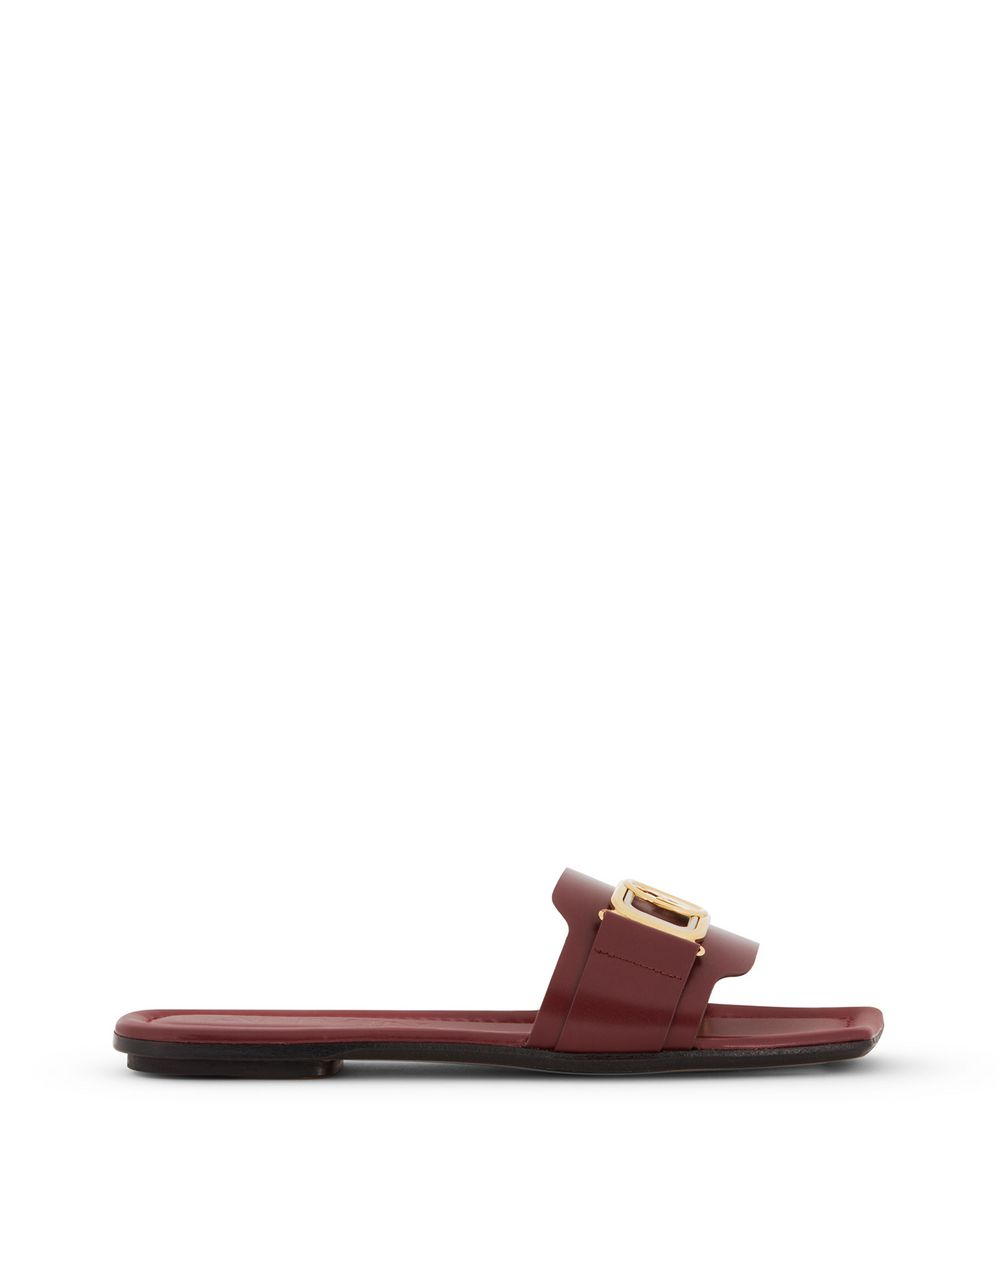 LEATHER FLAT SWAN MULES - Lanvin